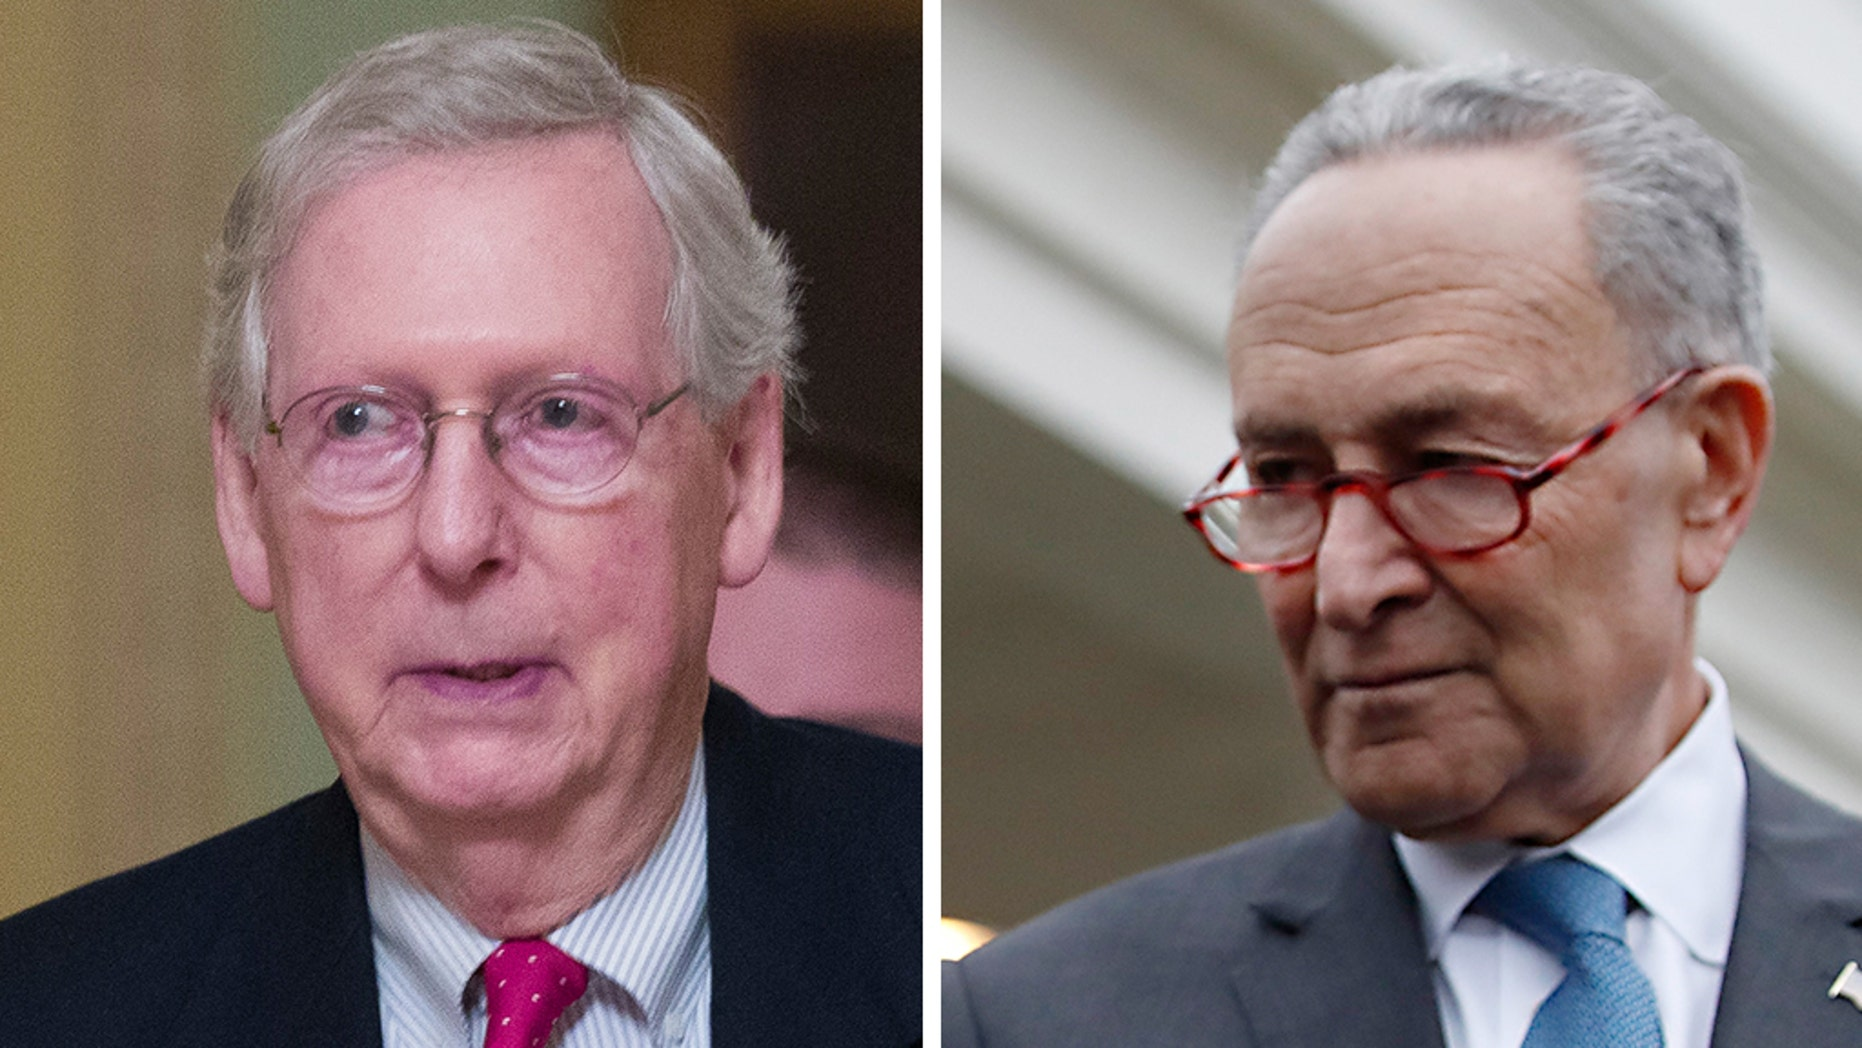 Senate Majority LeaderMitch McConnell, R-Ky., left, and Senate Minority LeaderCharles Schumer, D-N.Y., reached a deal that confirmed dozens of President Trump's nominees, a rare moment of bipartisan agreement as Congress prepares to wrap up its session.